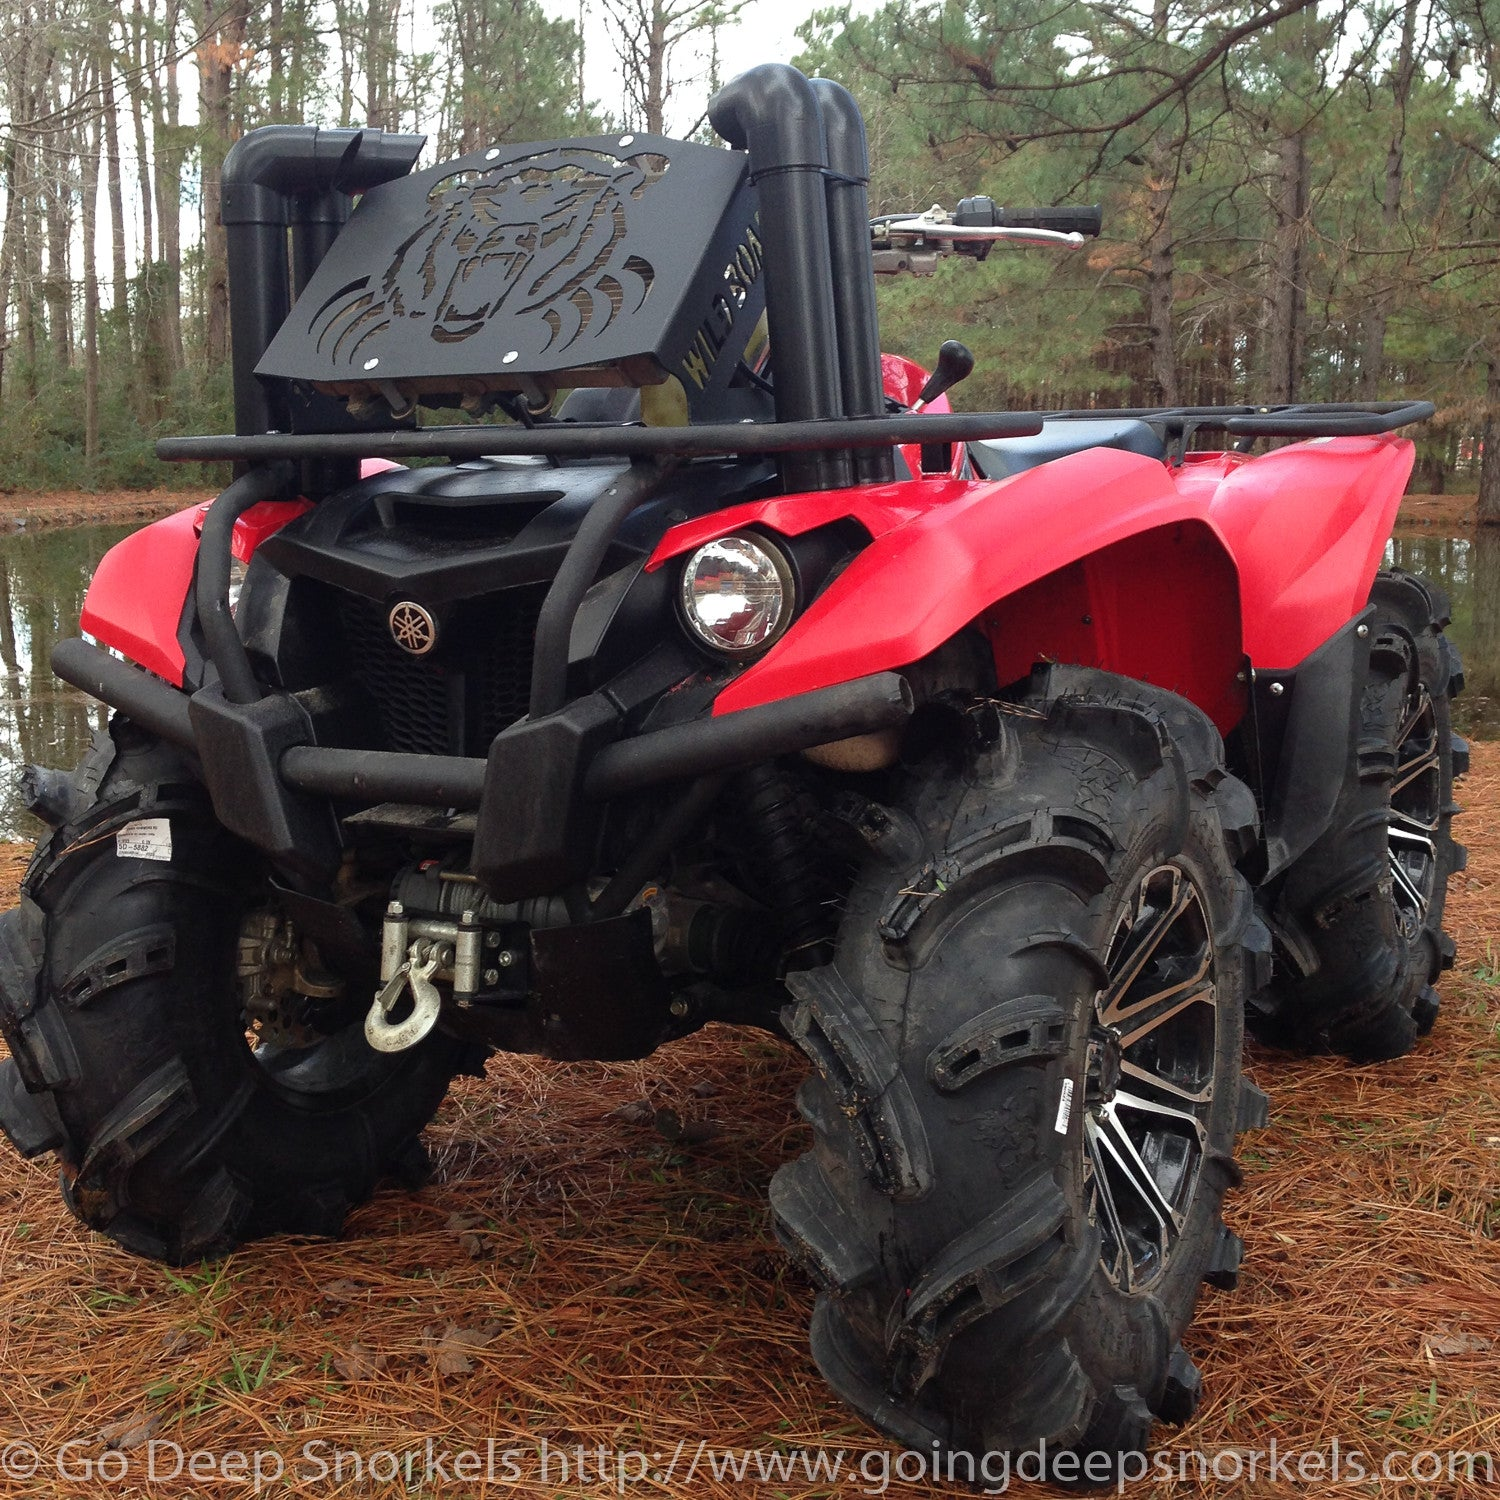 2017 yamaha kodiak 700 4x4 atv review atv rider autos post for Yamaha kodiak 700 review